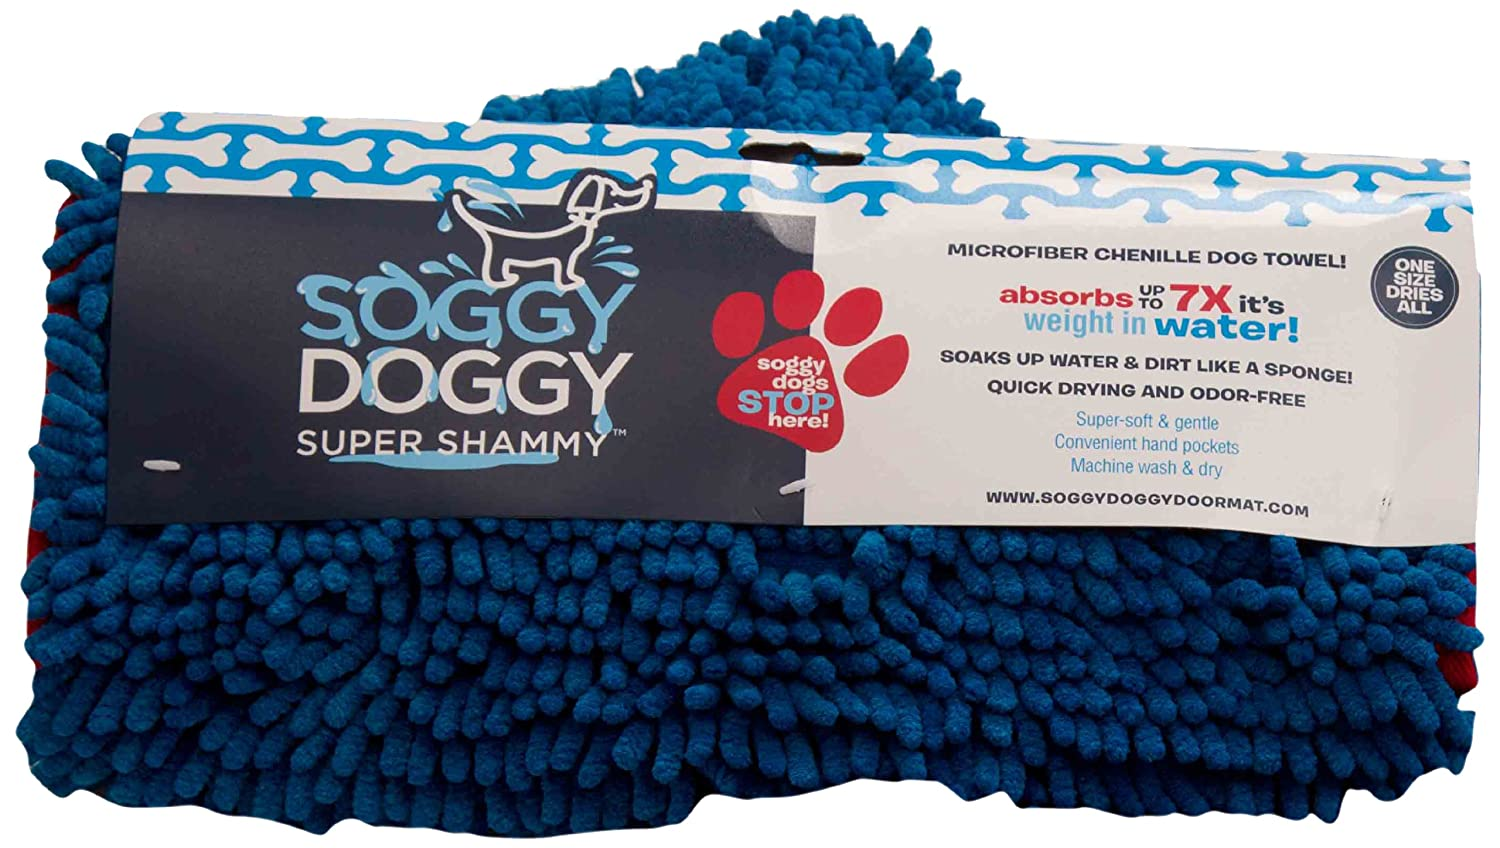 bluee Soggy Doggy Super Shammy bluee One Size 31-inch x 14-inch Microfiber Chenille Dog Towel with Hand Pockets